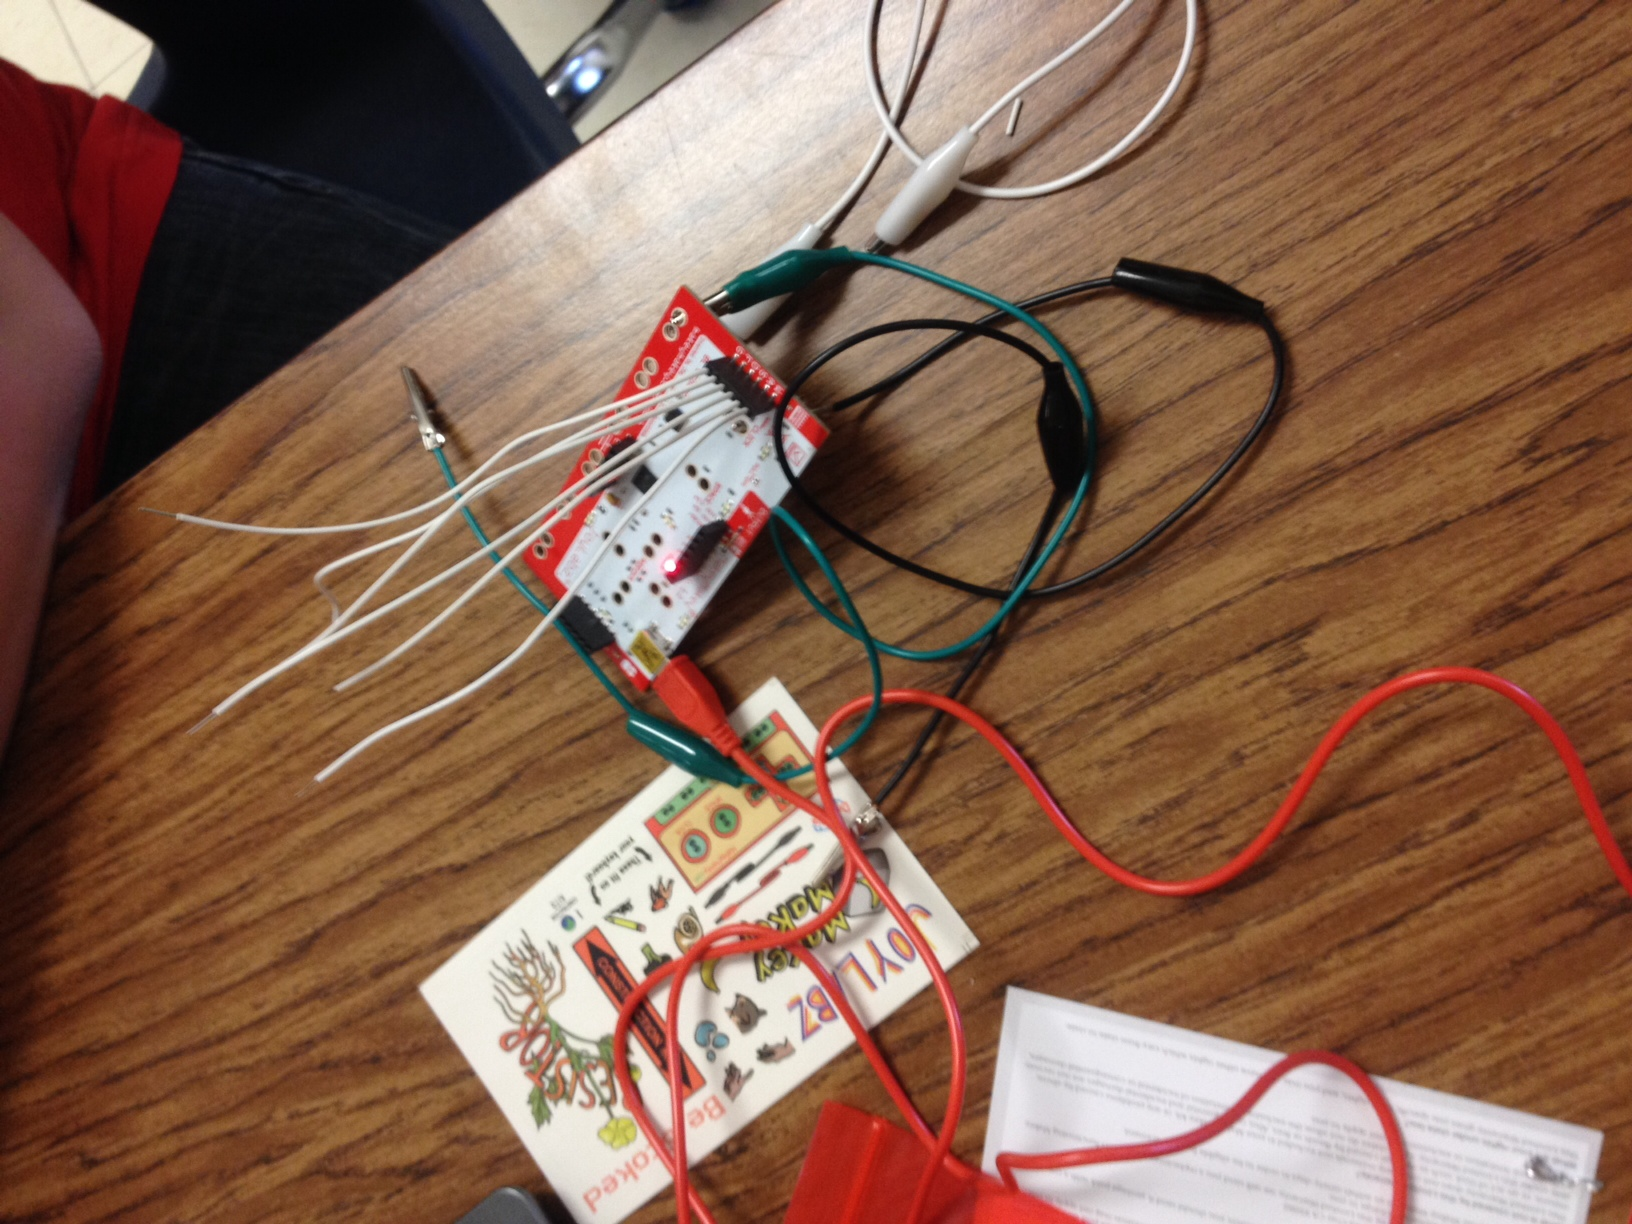 Makey Makey Math - Coding Probability Simulators #makerED